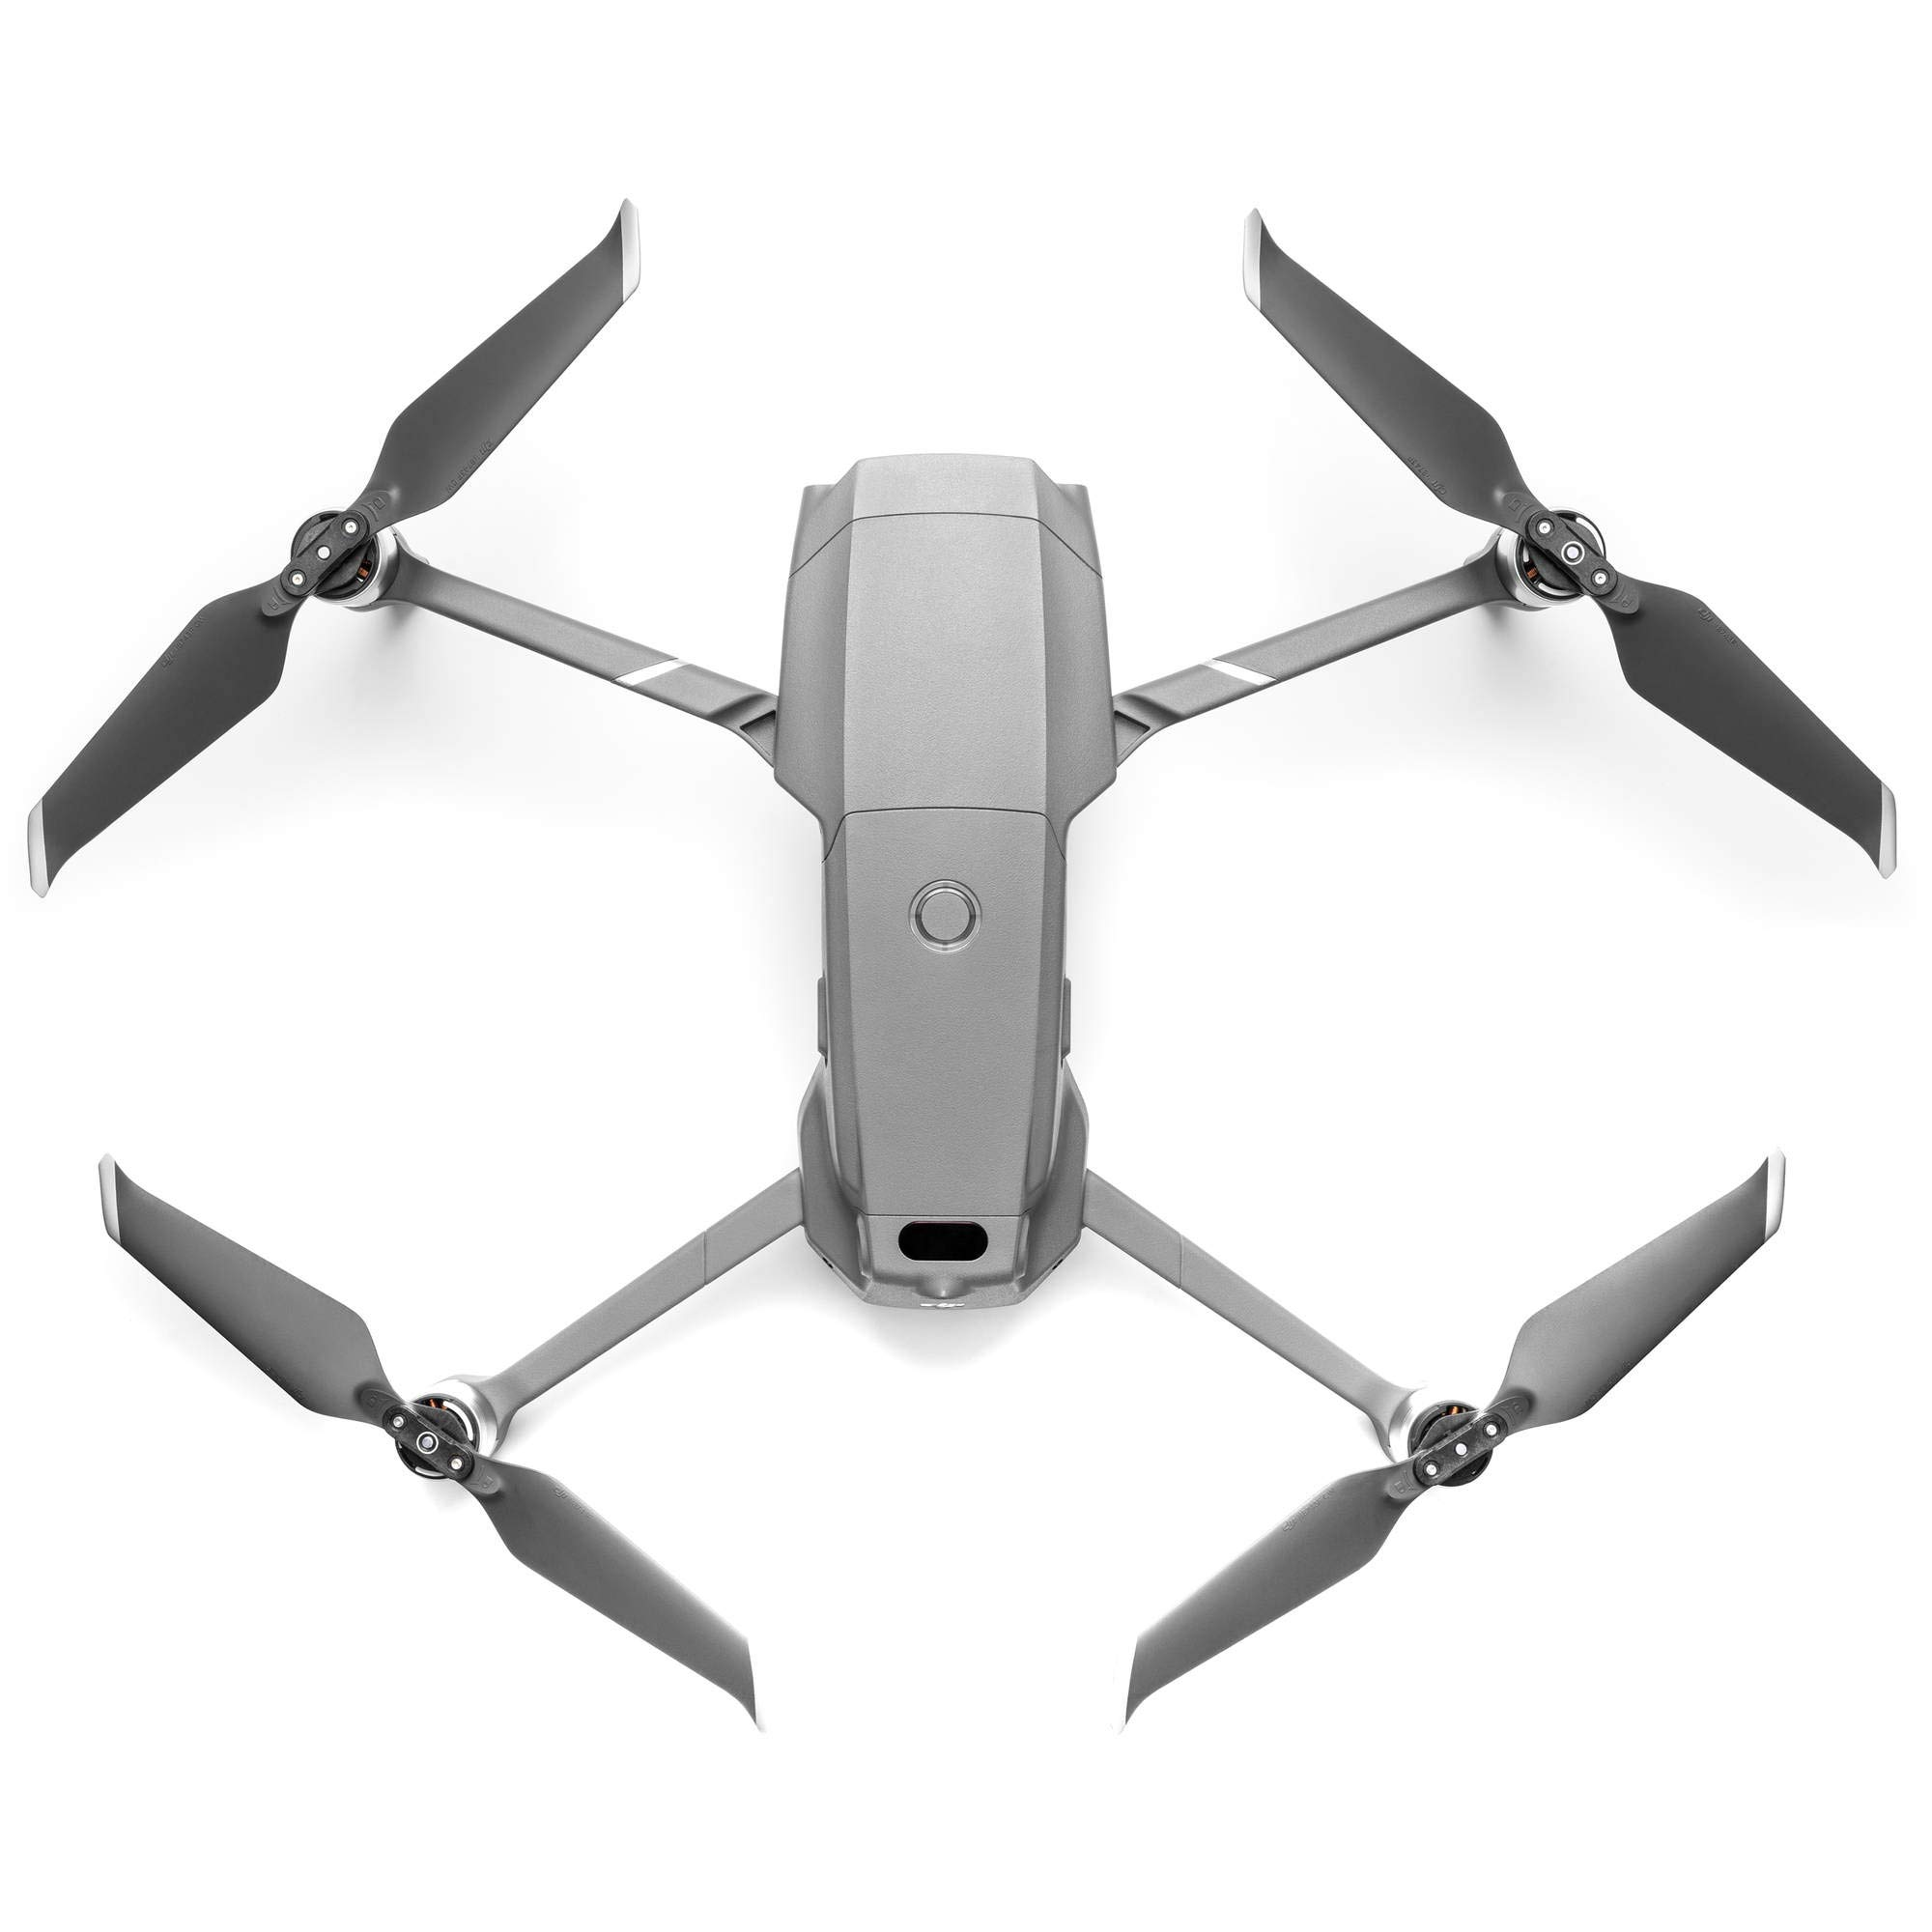 DJI Mavic 2 Pro Drone Quadcopter with Hasselblad Camera + Extra Battery + SanDisk Ultra 32GB Card + Landing Pad + Starter Kit